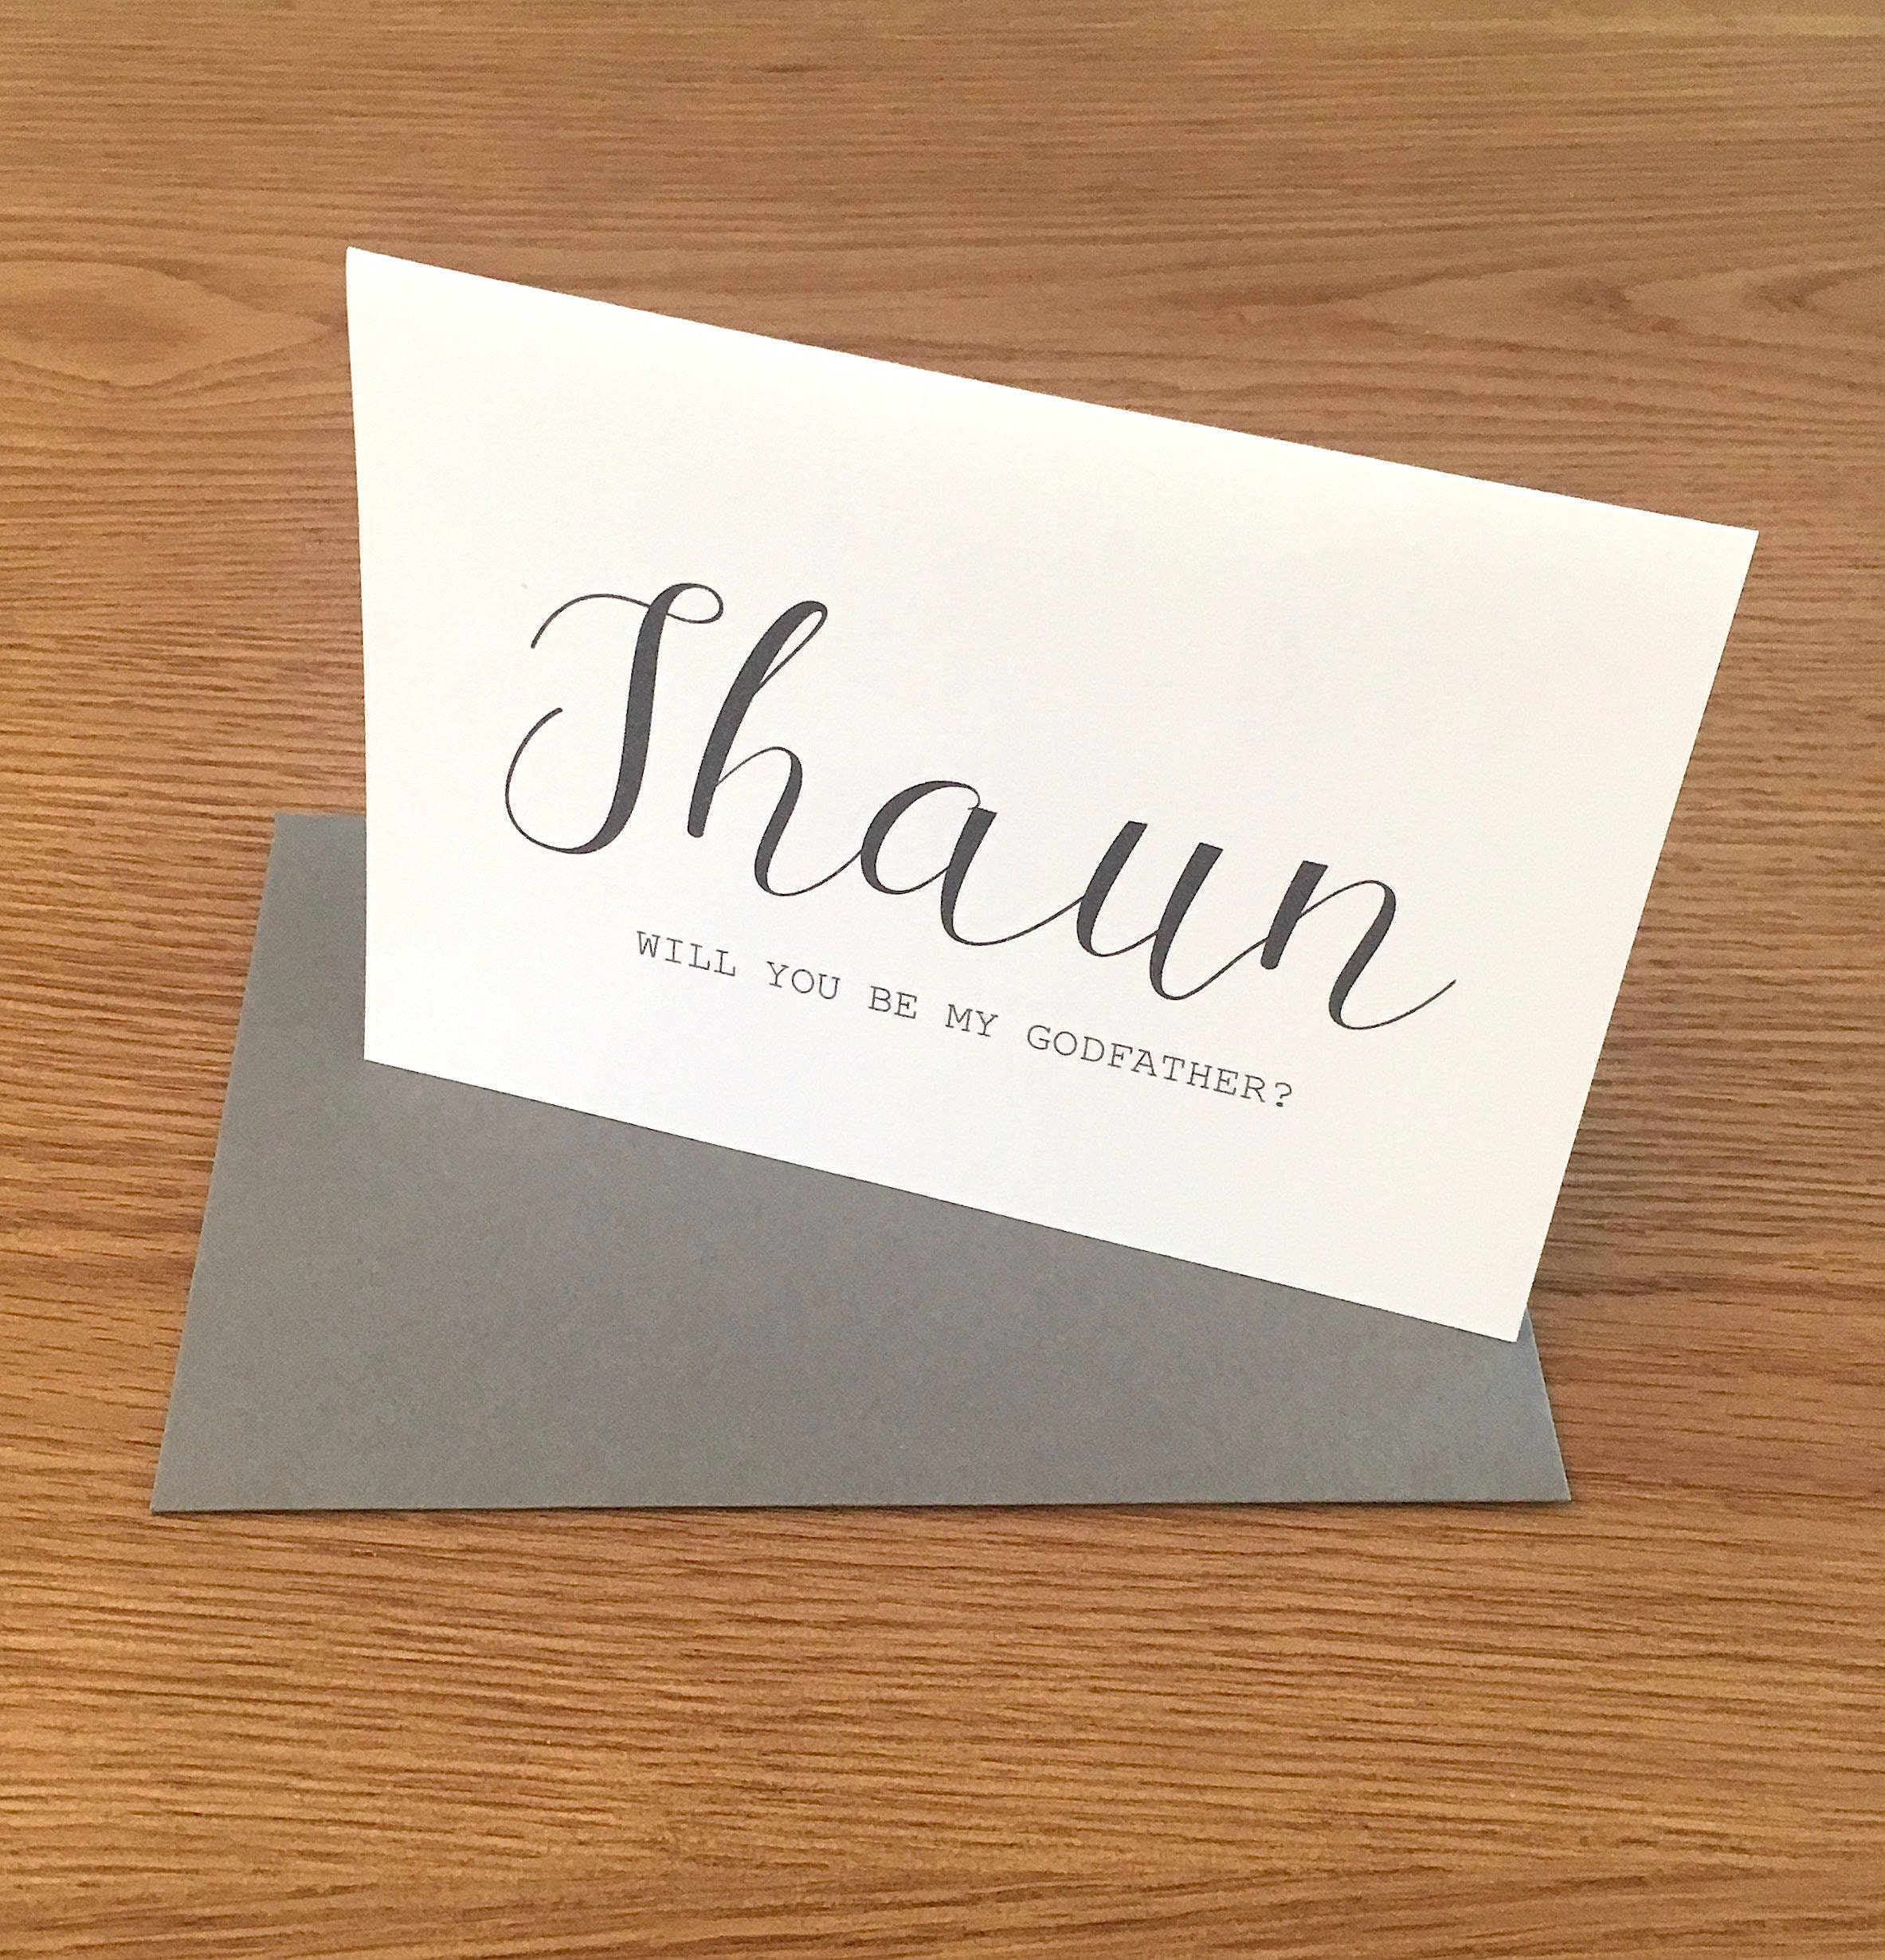 ENVELOPE PERSONALISED WISH CHARM THANK YOU GODFATHER CARD GIFT COLOUR OPTIONS